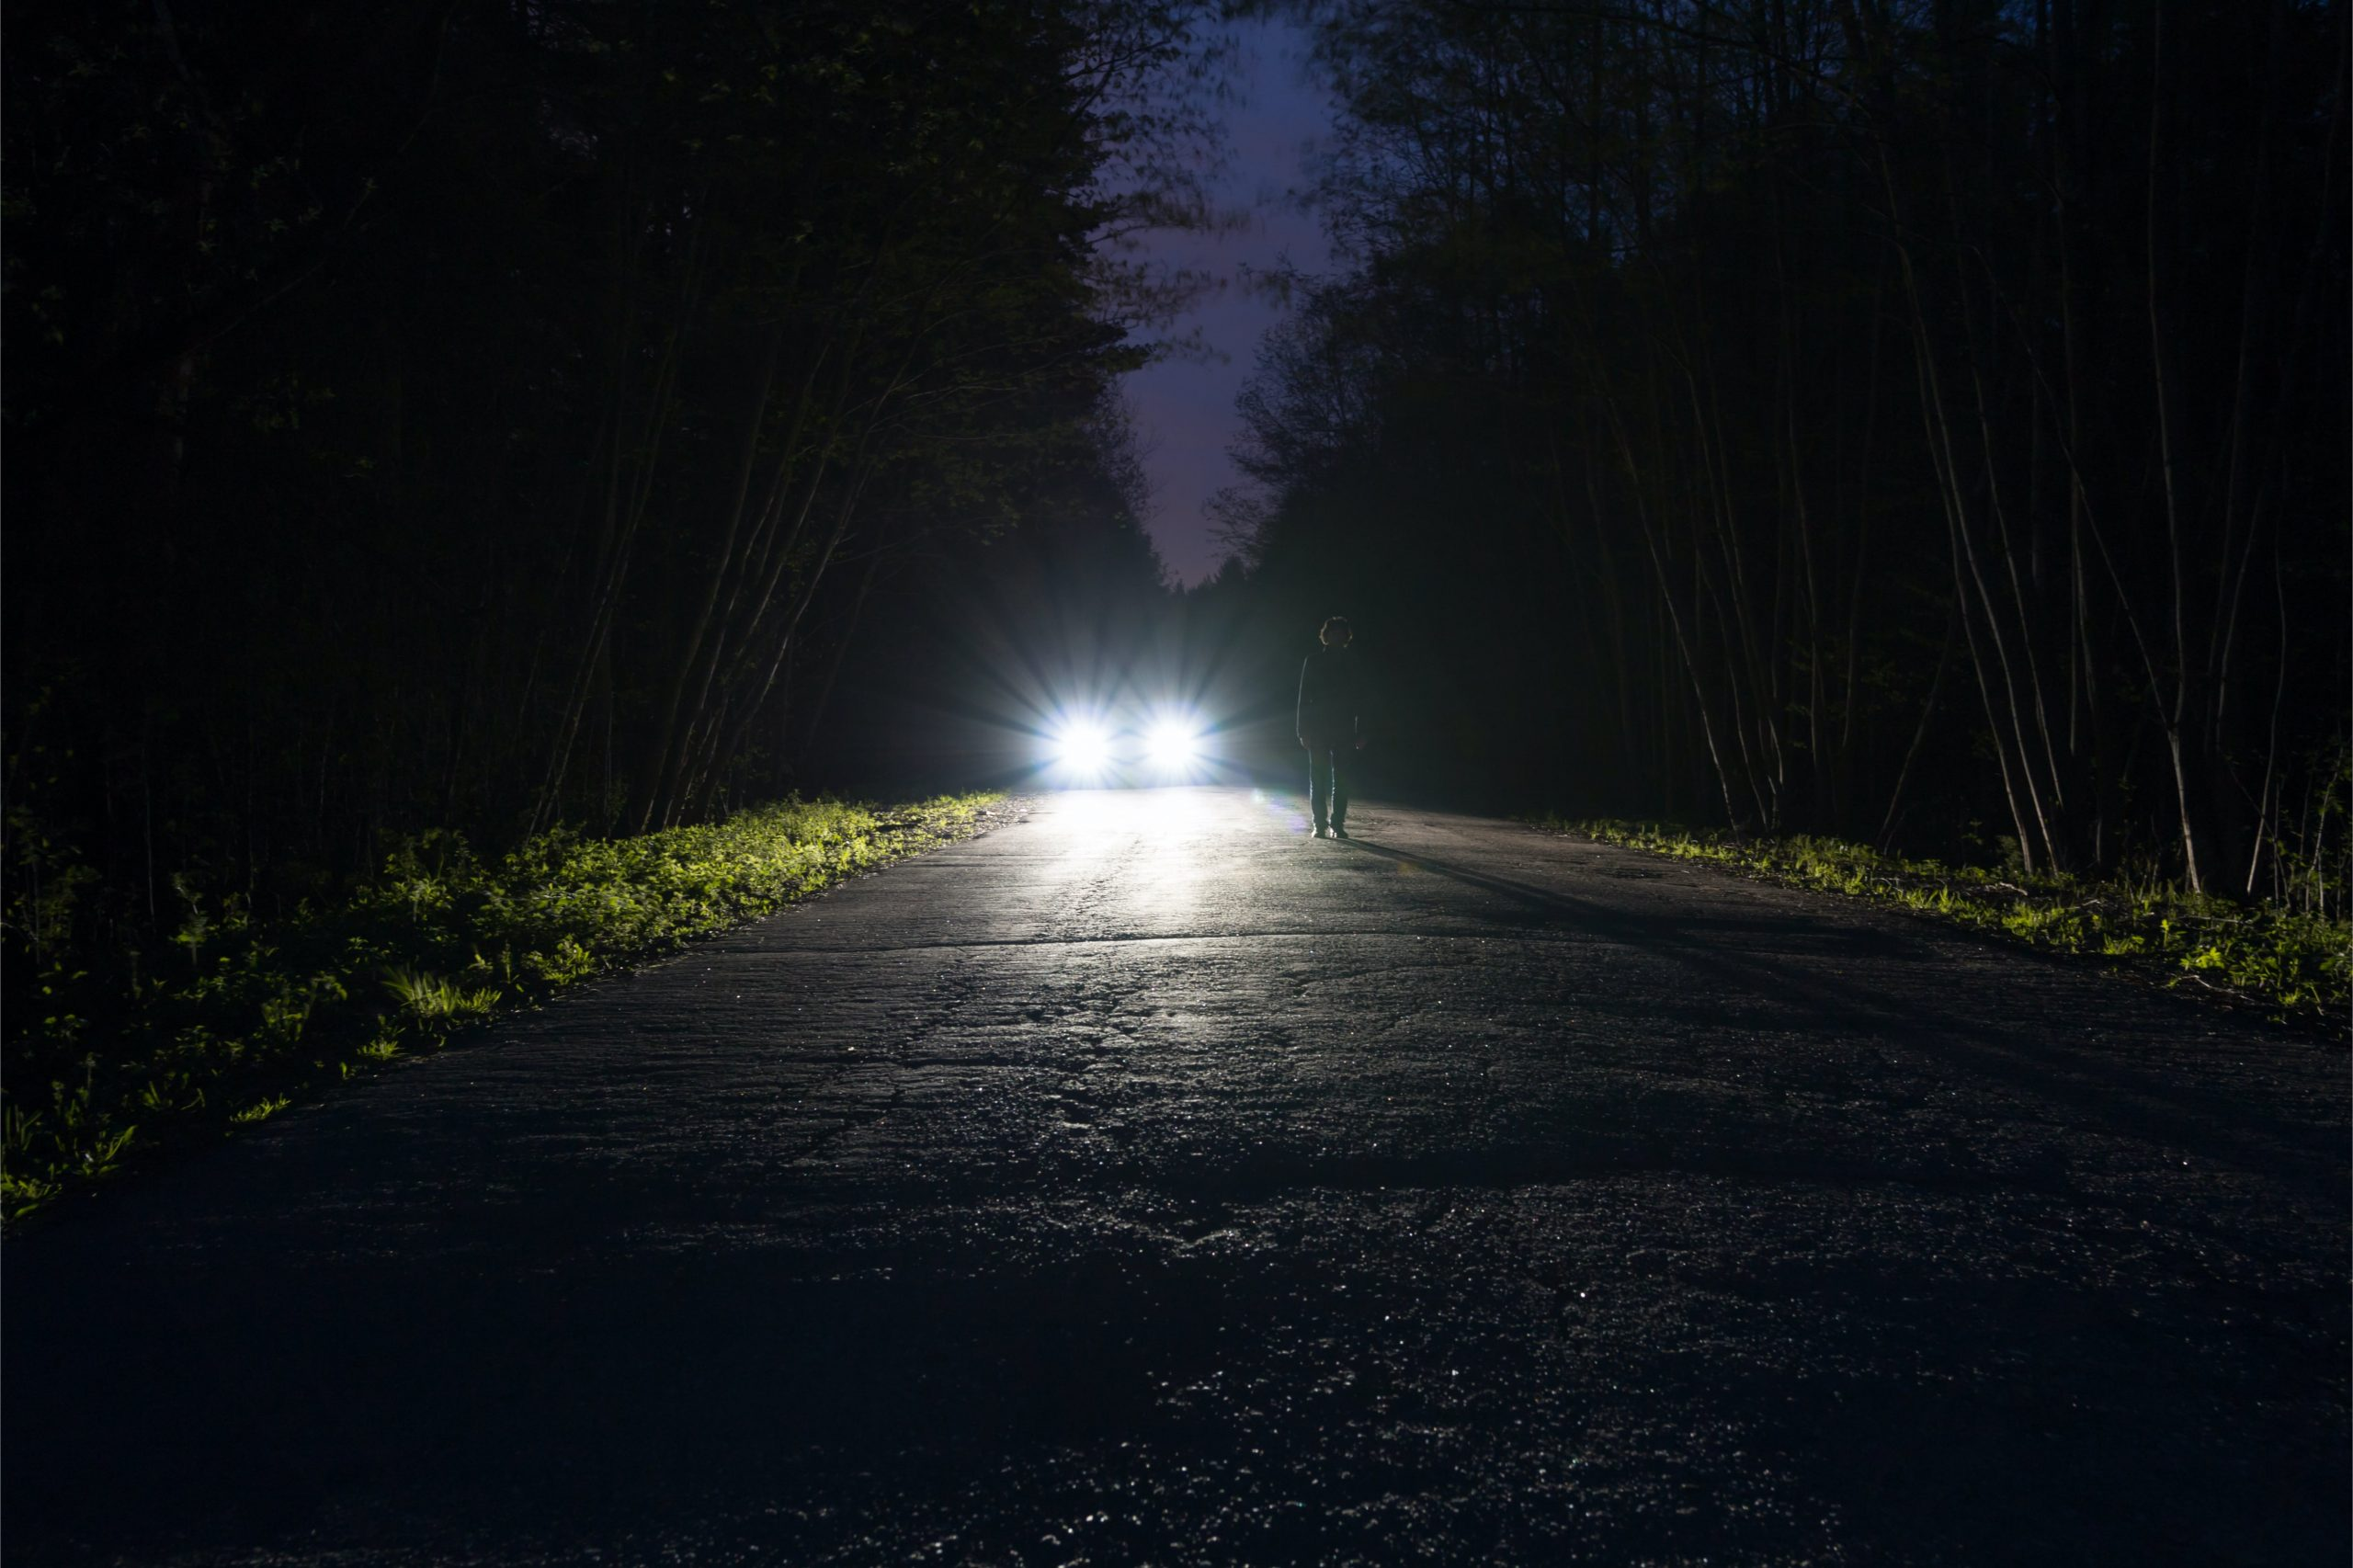 Front view of headlight beams in the distant at night on a dark road.